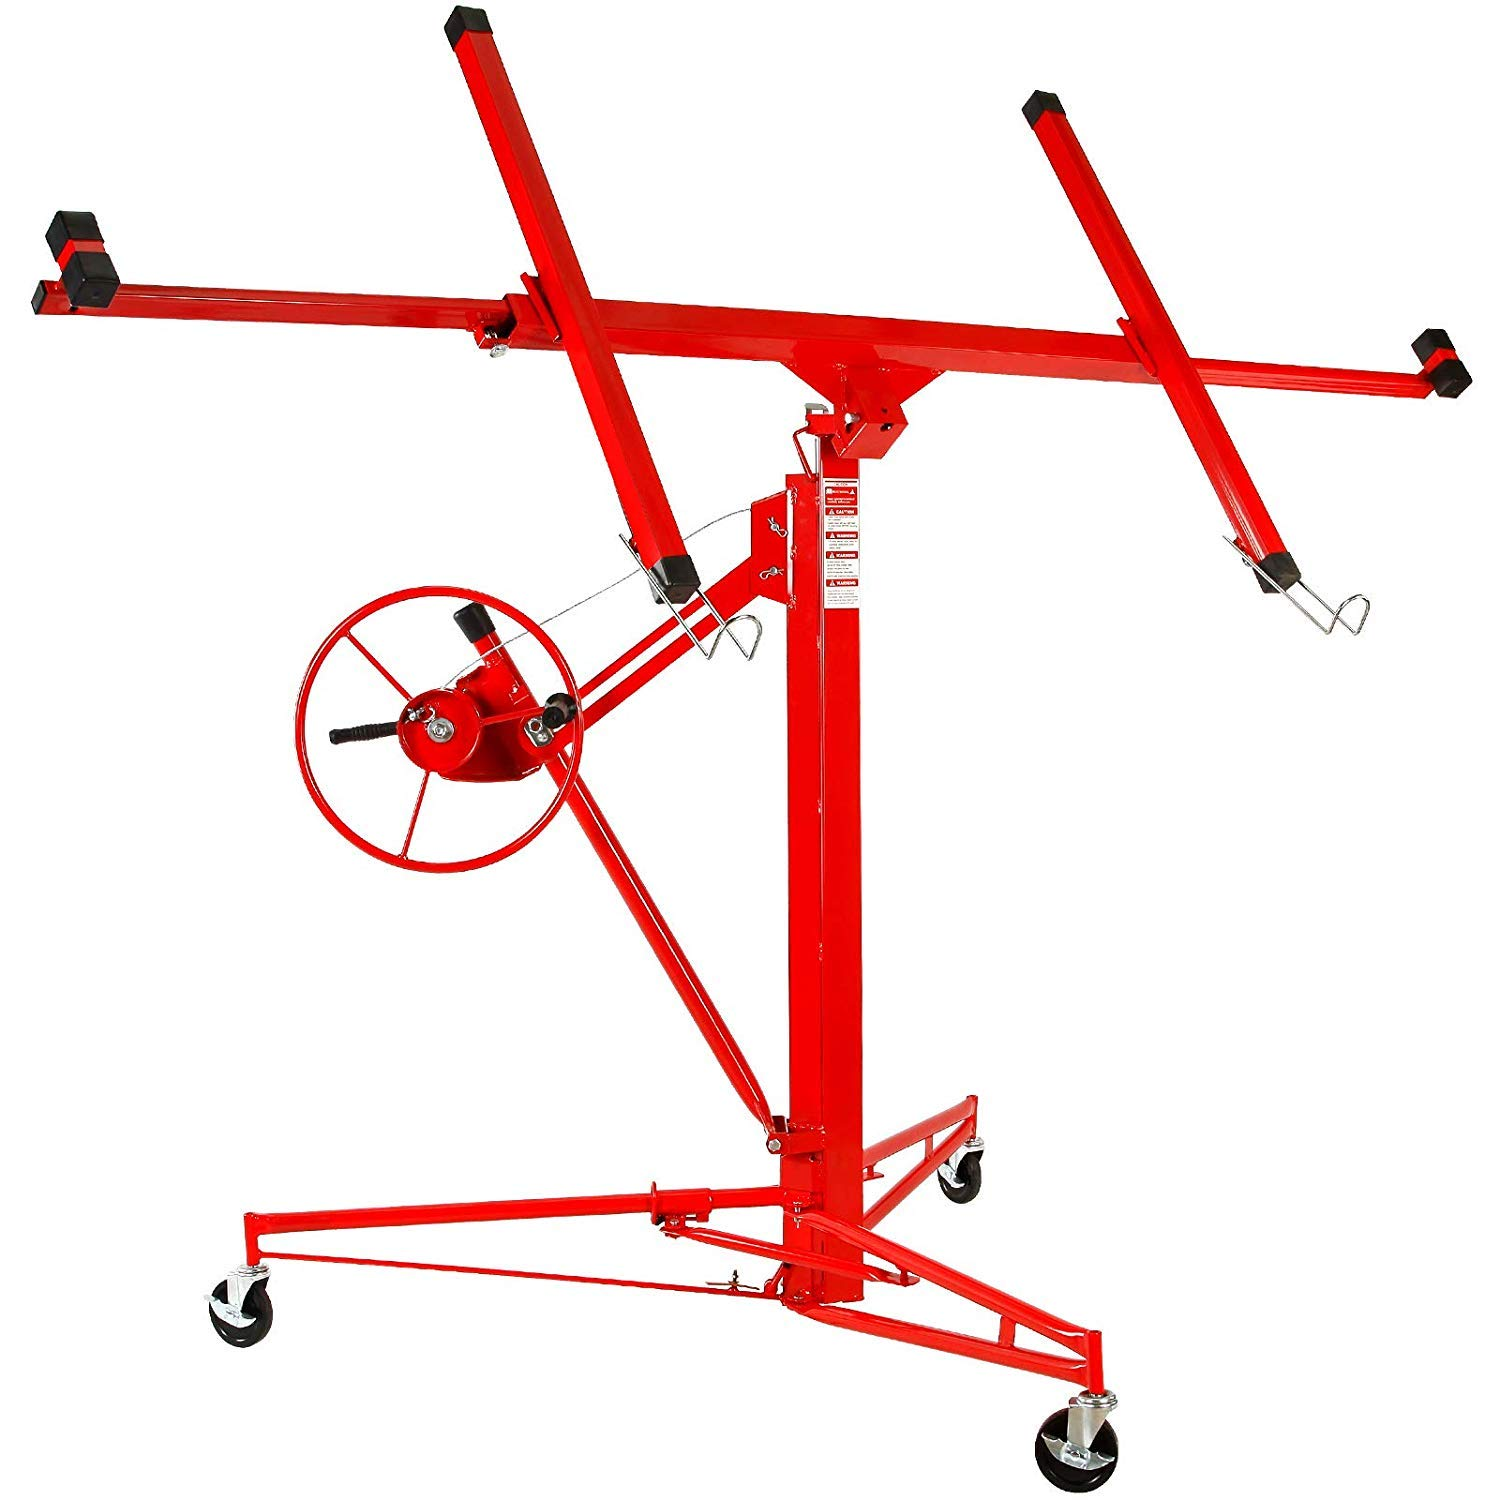 Vosson Drywall Lift 11' Panel Hoist Jack Lifter Drywall Ceiling Lift Construction Tools Lockable w/Caster Wheel Red